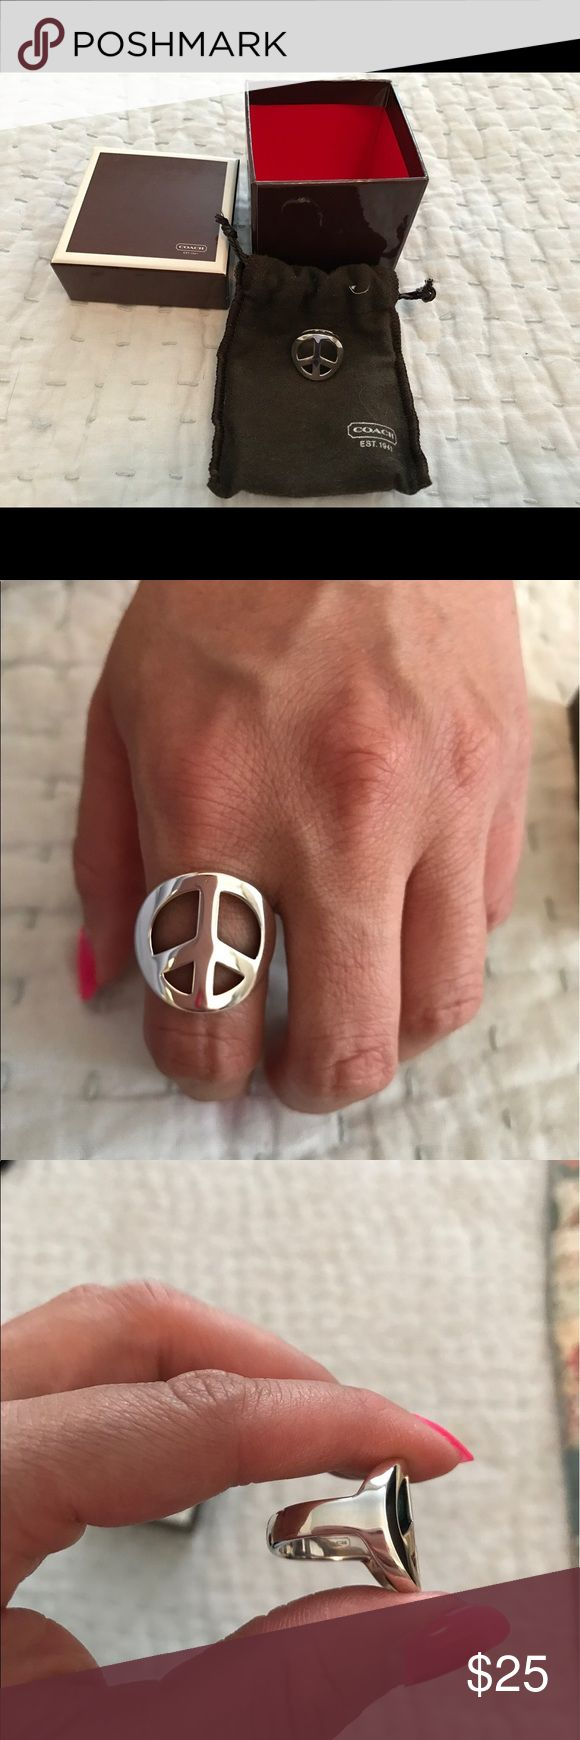 Coach Sterling Silver Peace Ring Authentic Coach Sterling Silver Peace Ring. Never worn. Comes with bog and felt storage bag. The ring is size 6. I bought this ring because I loved it but it was always too big for my fingers so I never wore it. I had intended to get it sized but never got around to it. Coach Jewelry Rings